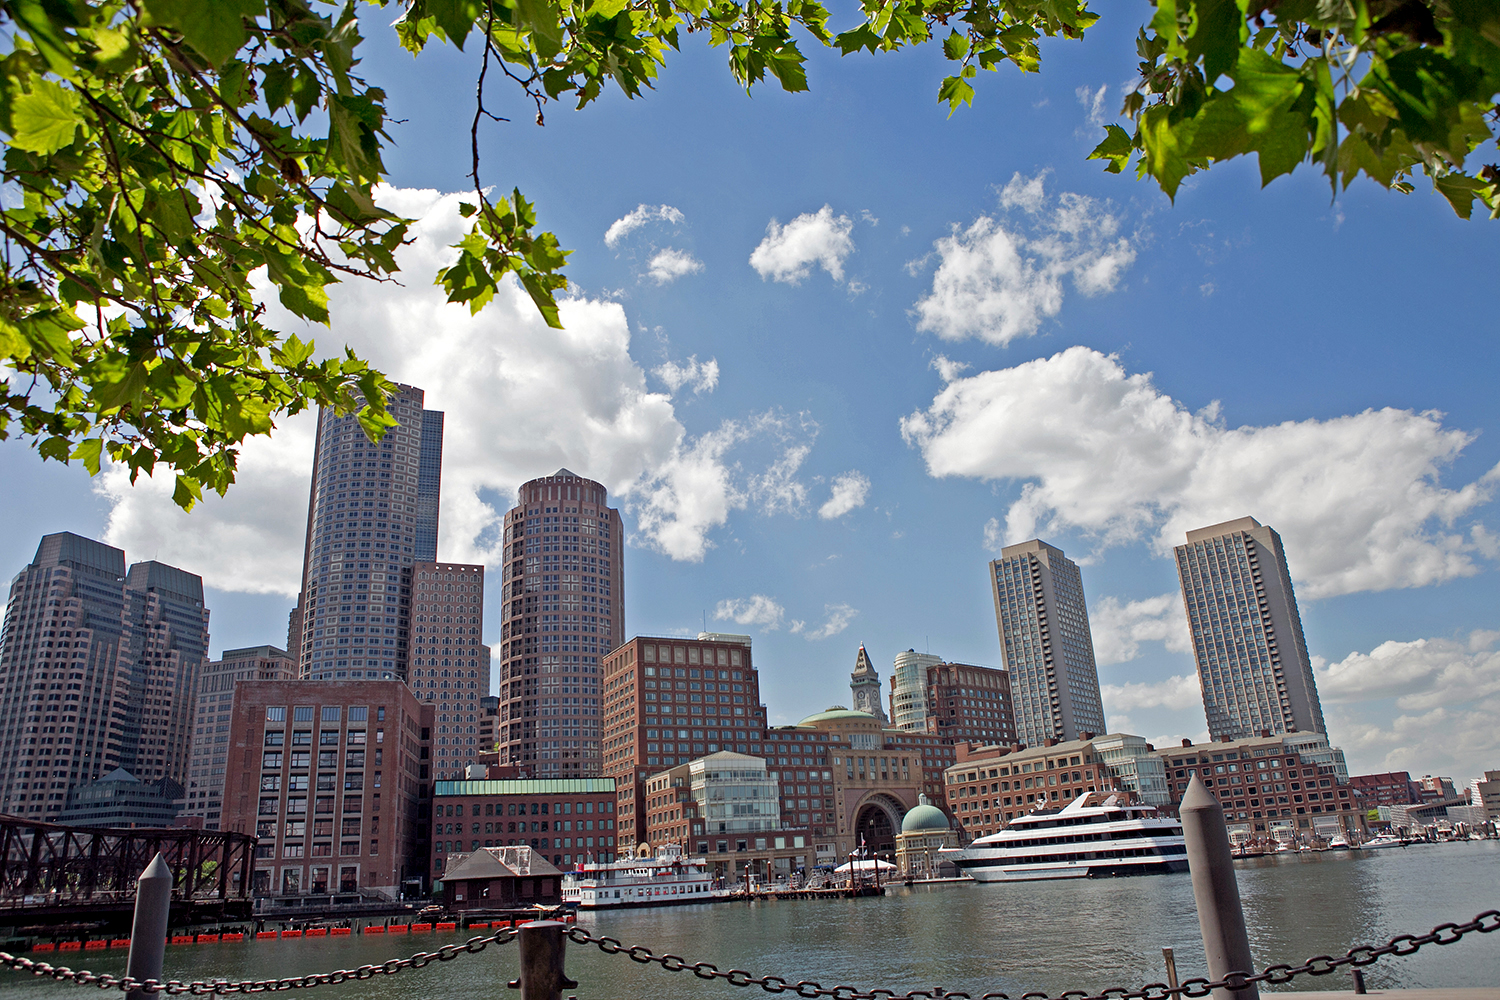 The Boston skyline is seen from across the Fort Point Channel on June 6, 2016. (Photo by Lauren Owens Lambert/GroundTruth)